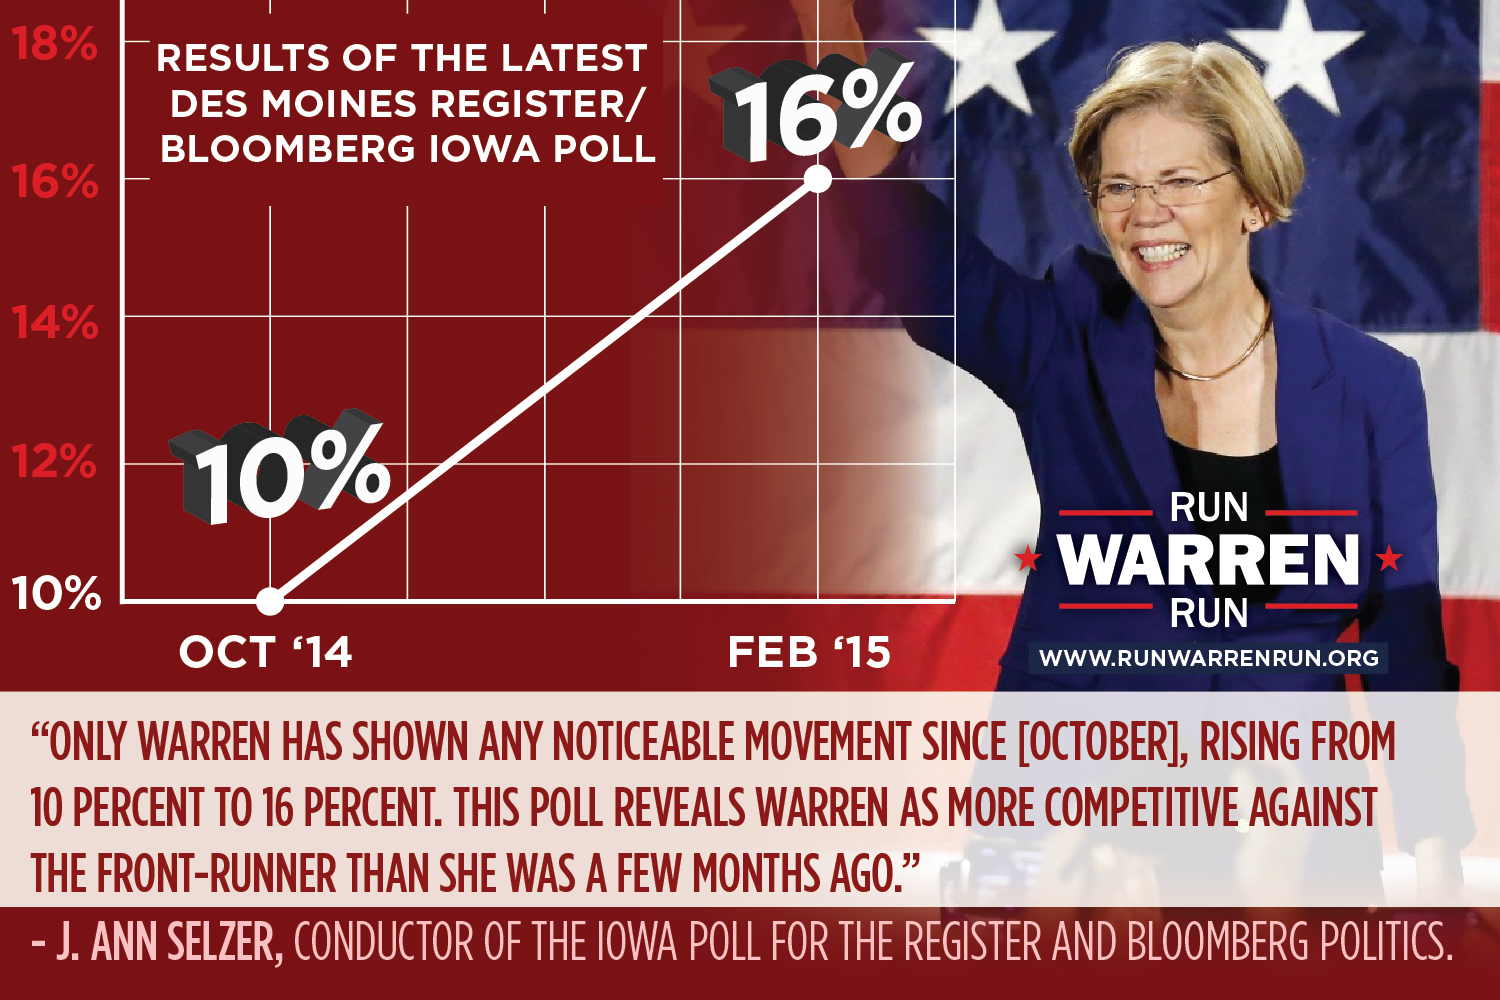 Des Moines Register poll shows notable increase in Warren support